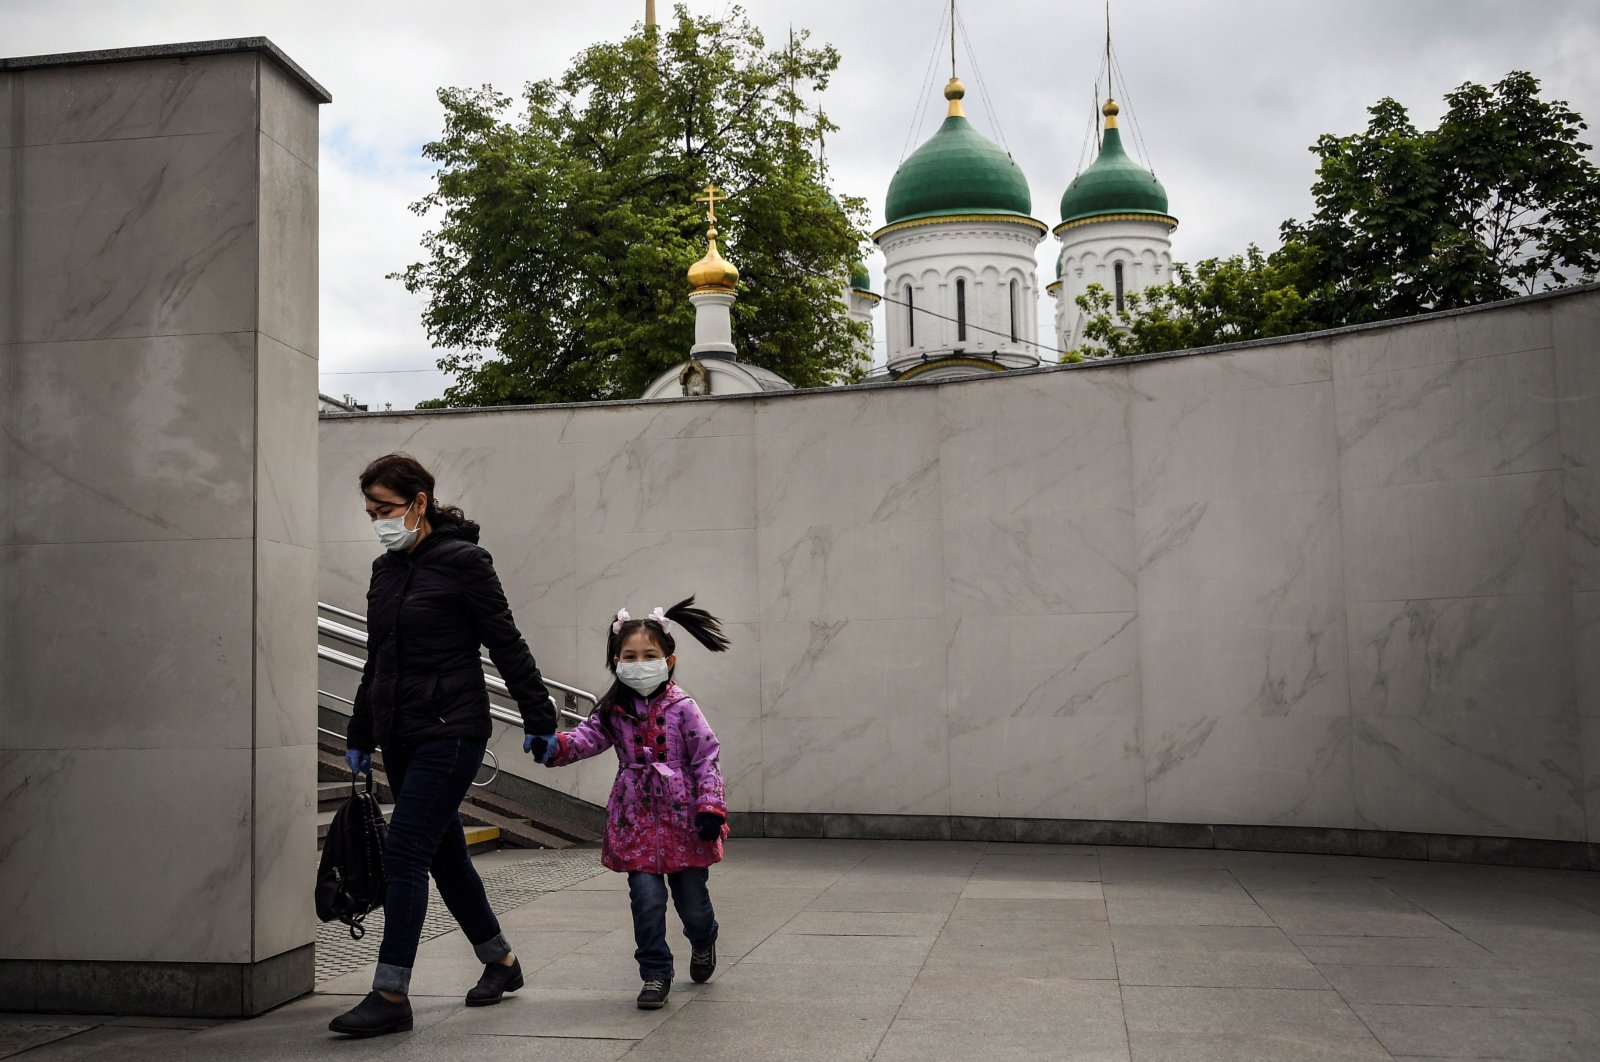 A woman and a girl wearing protective face masks walk through a pedestrian underpass, Moscow, Russia, May 22, 2020. (AFP Photo)